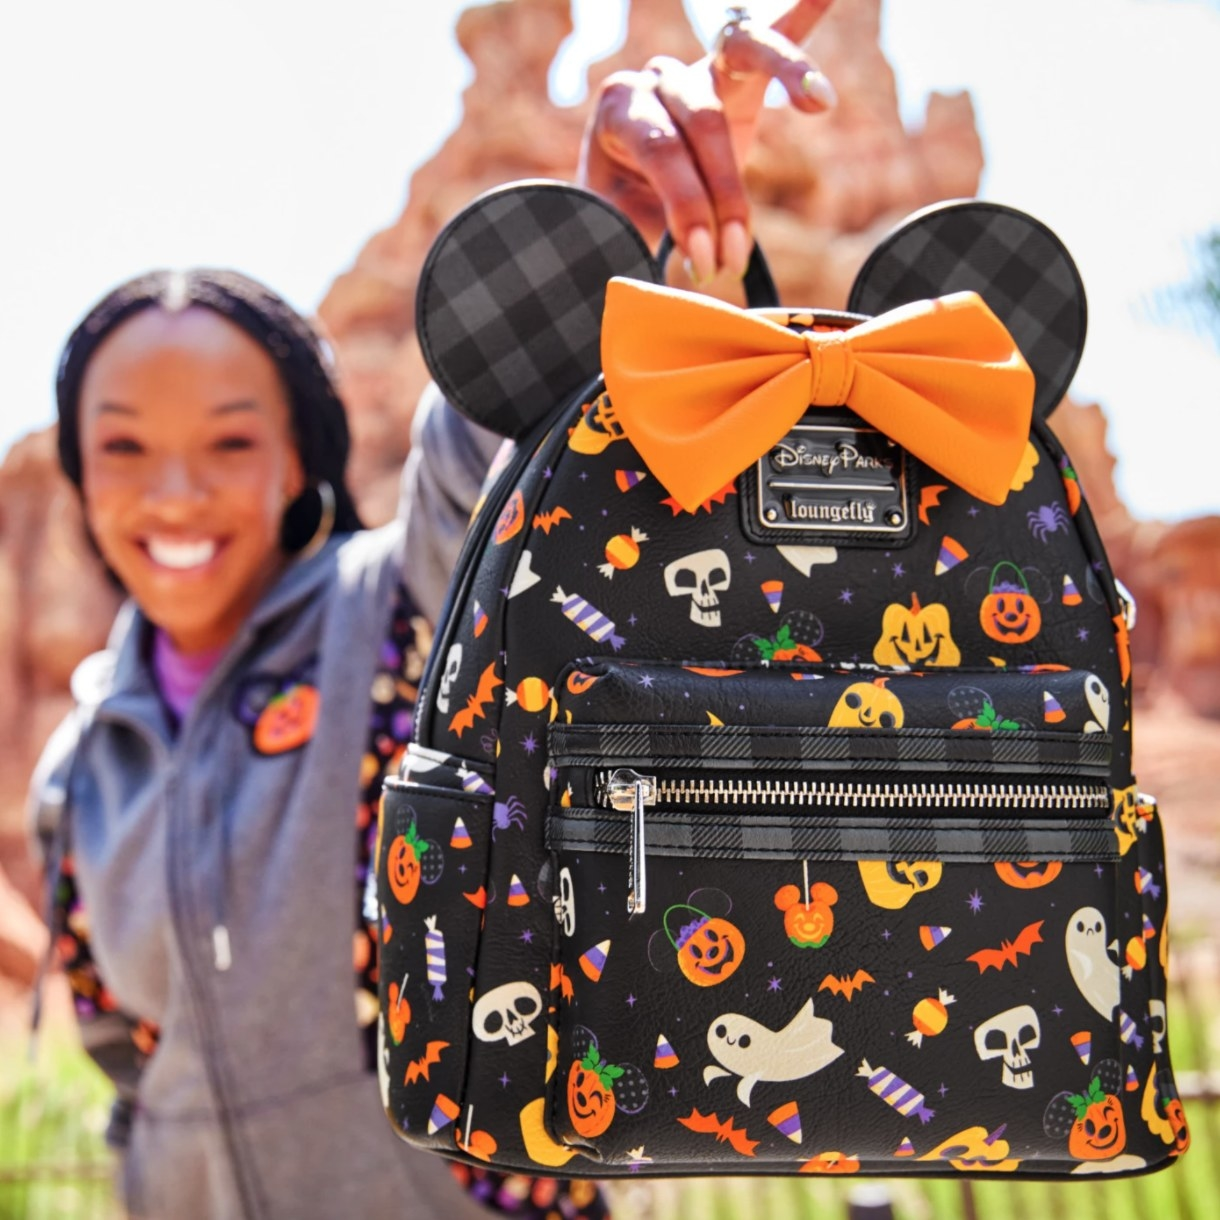 A black backpack with orange pumpkins and ghost print, with orange bow and black ears